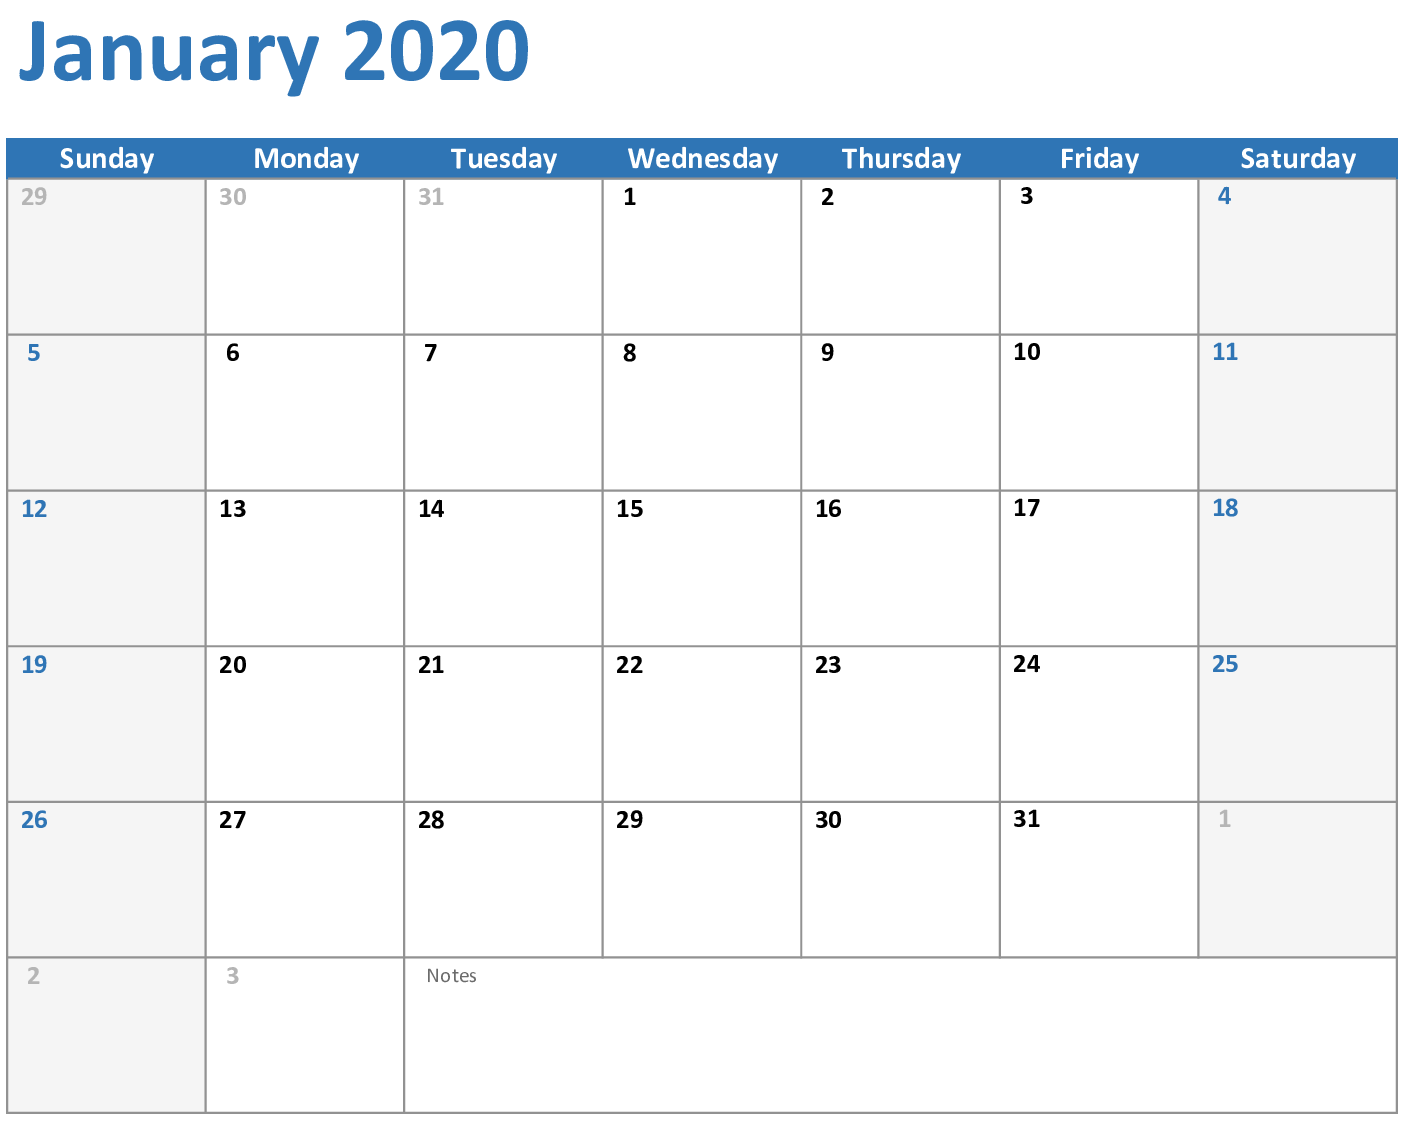 January 2020 Calendar With Holiday